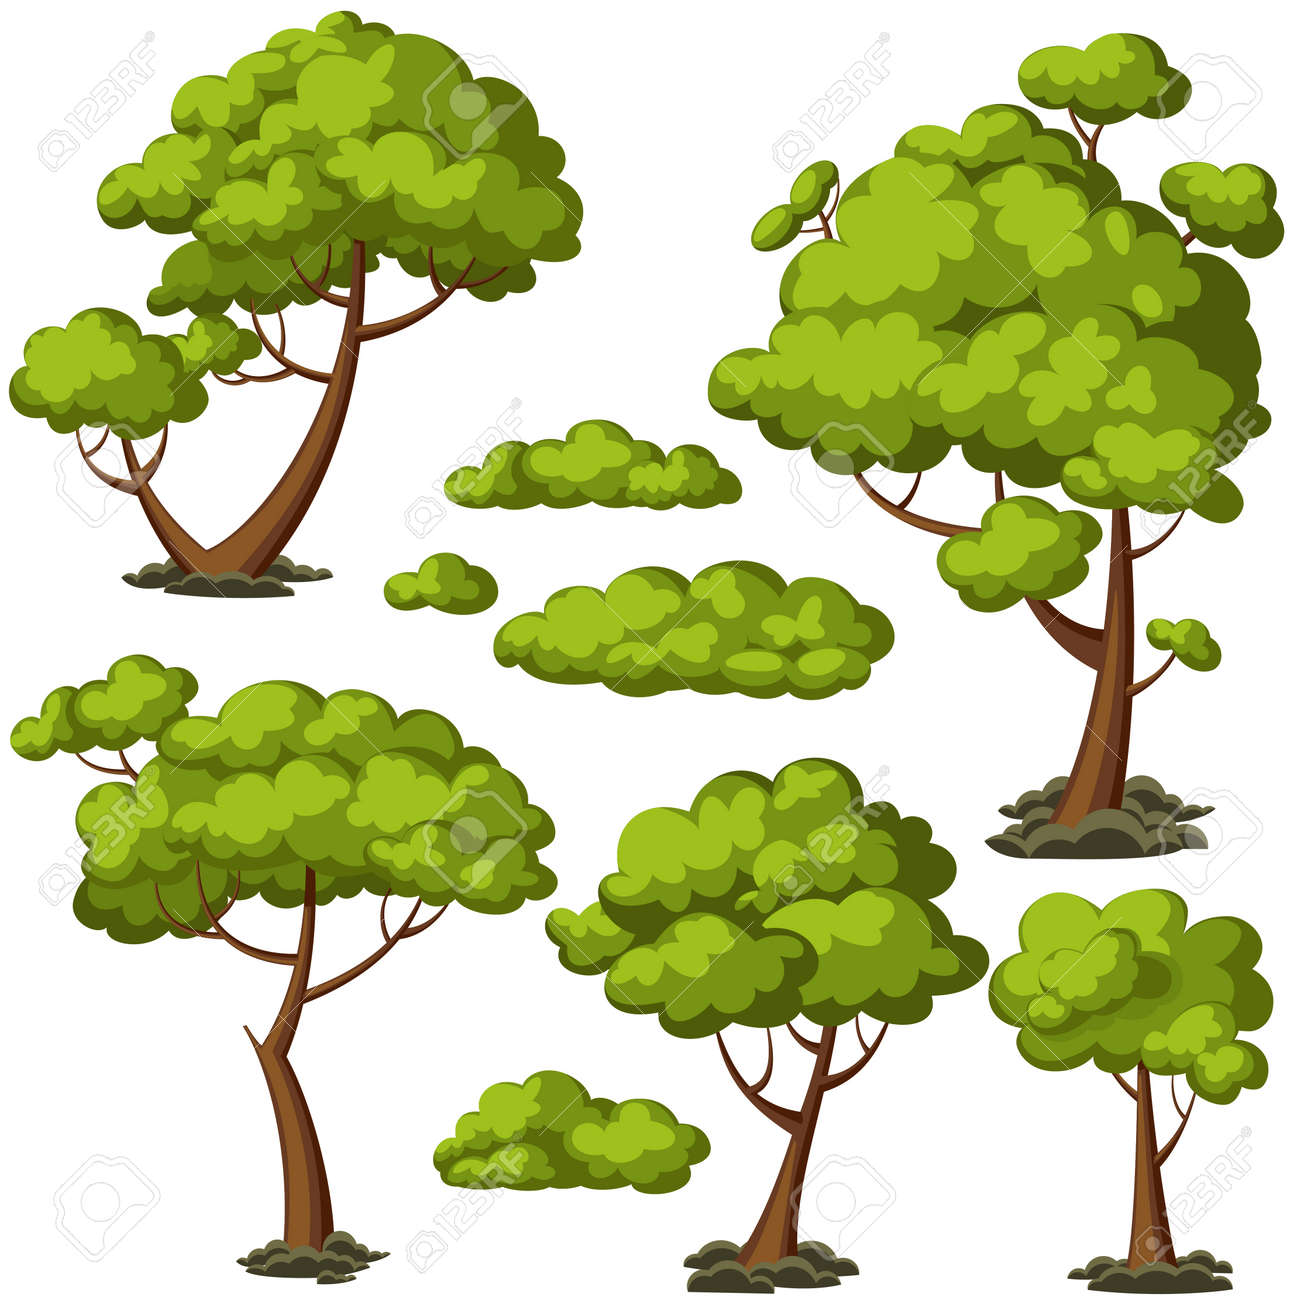 Set of funny cartoon trees and green bushes. Vector illustration. - 54320005